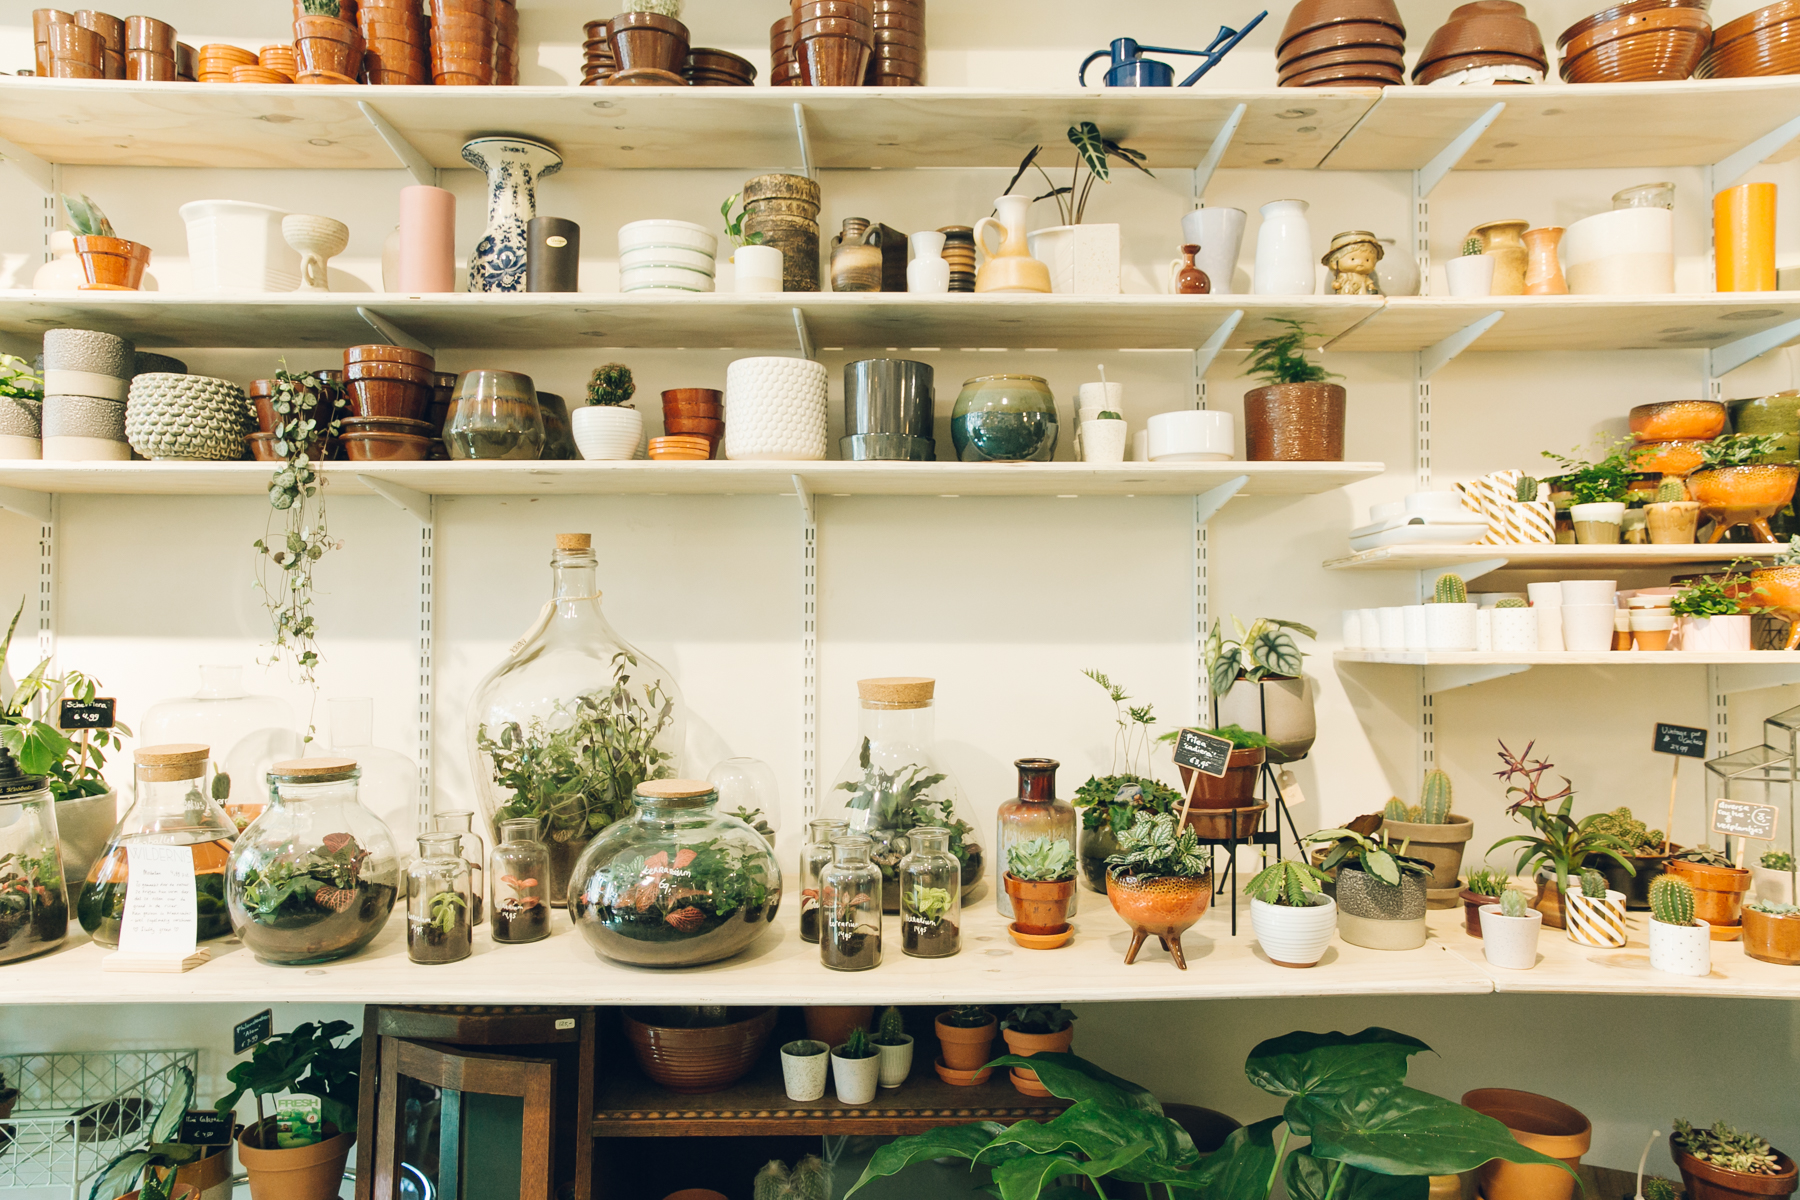 Plants and ceramics for sale in Wildernis in Amsterdam.